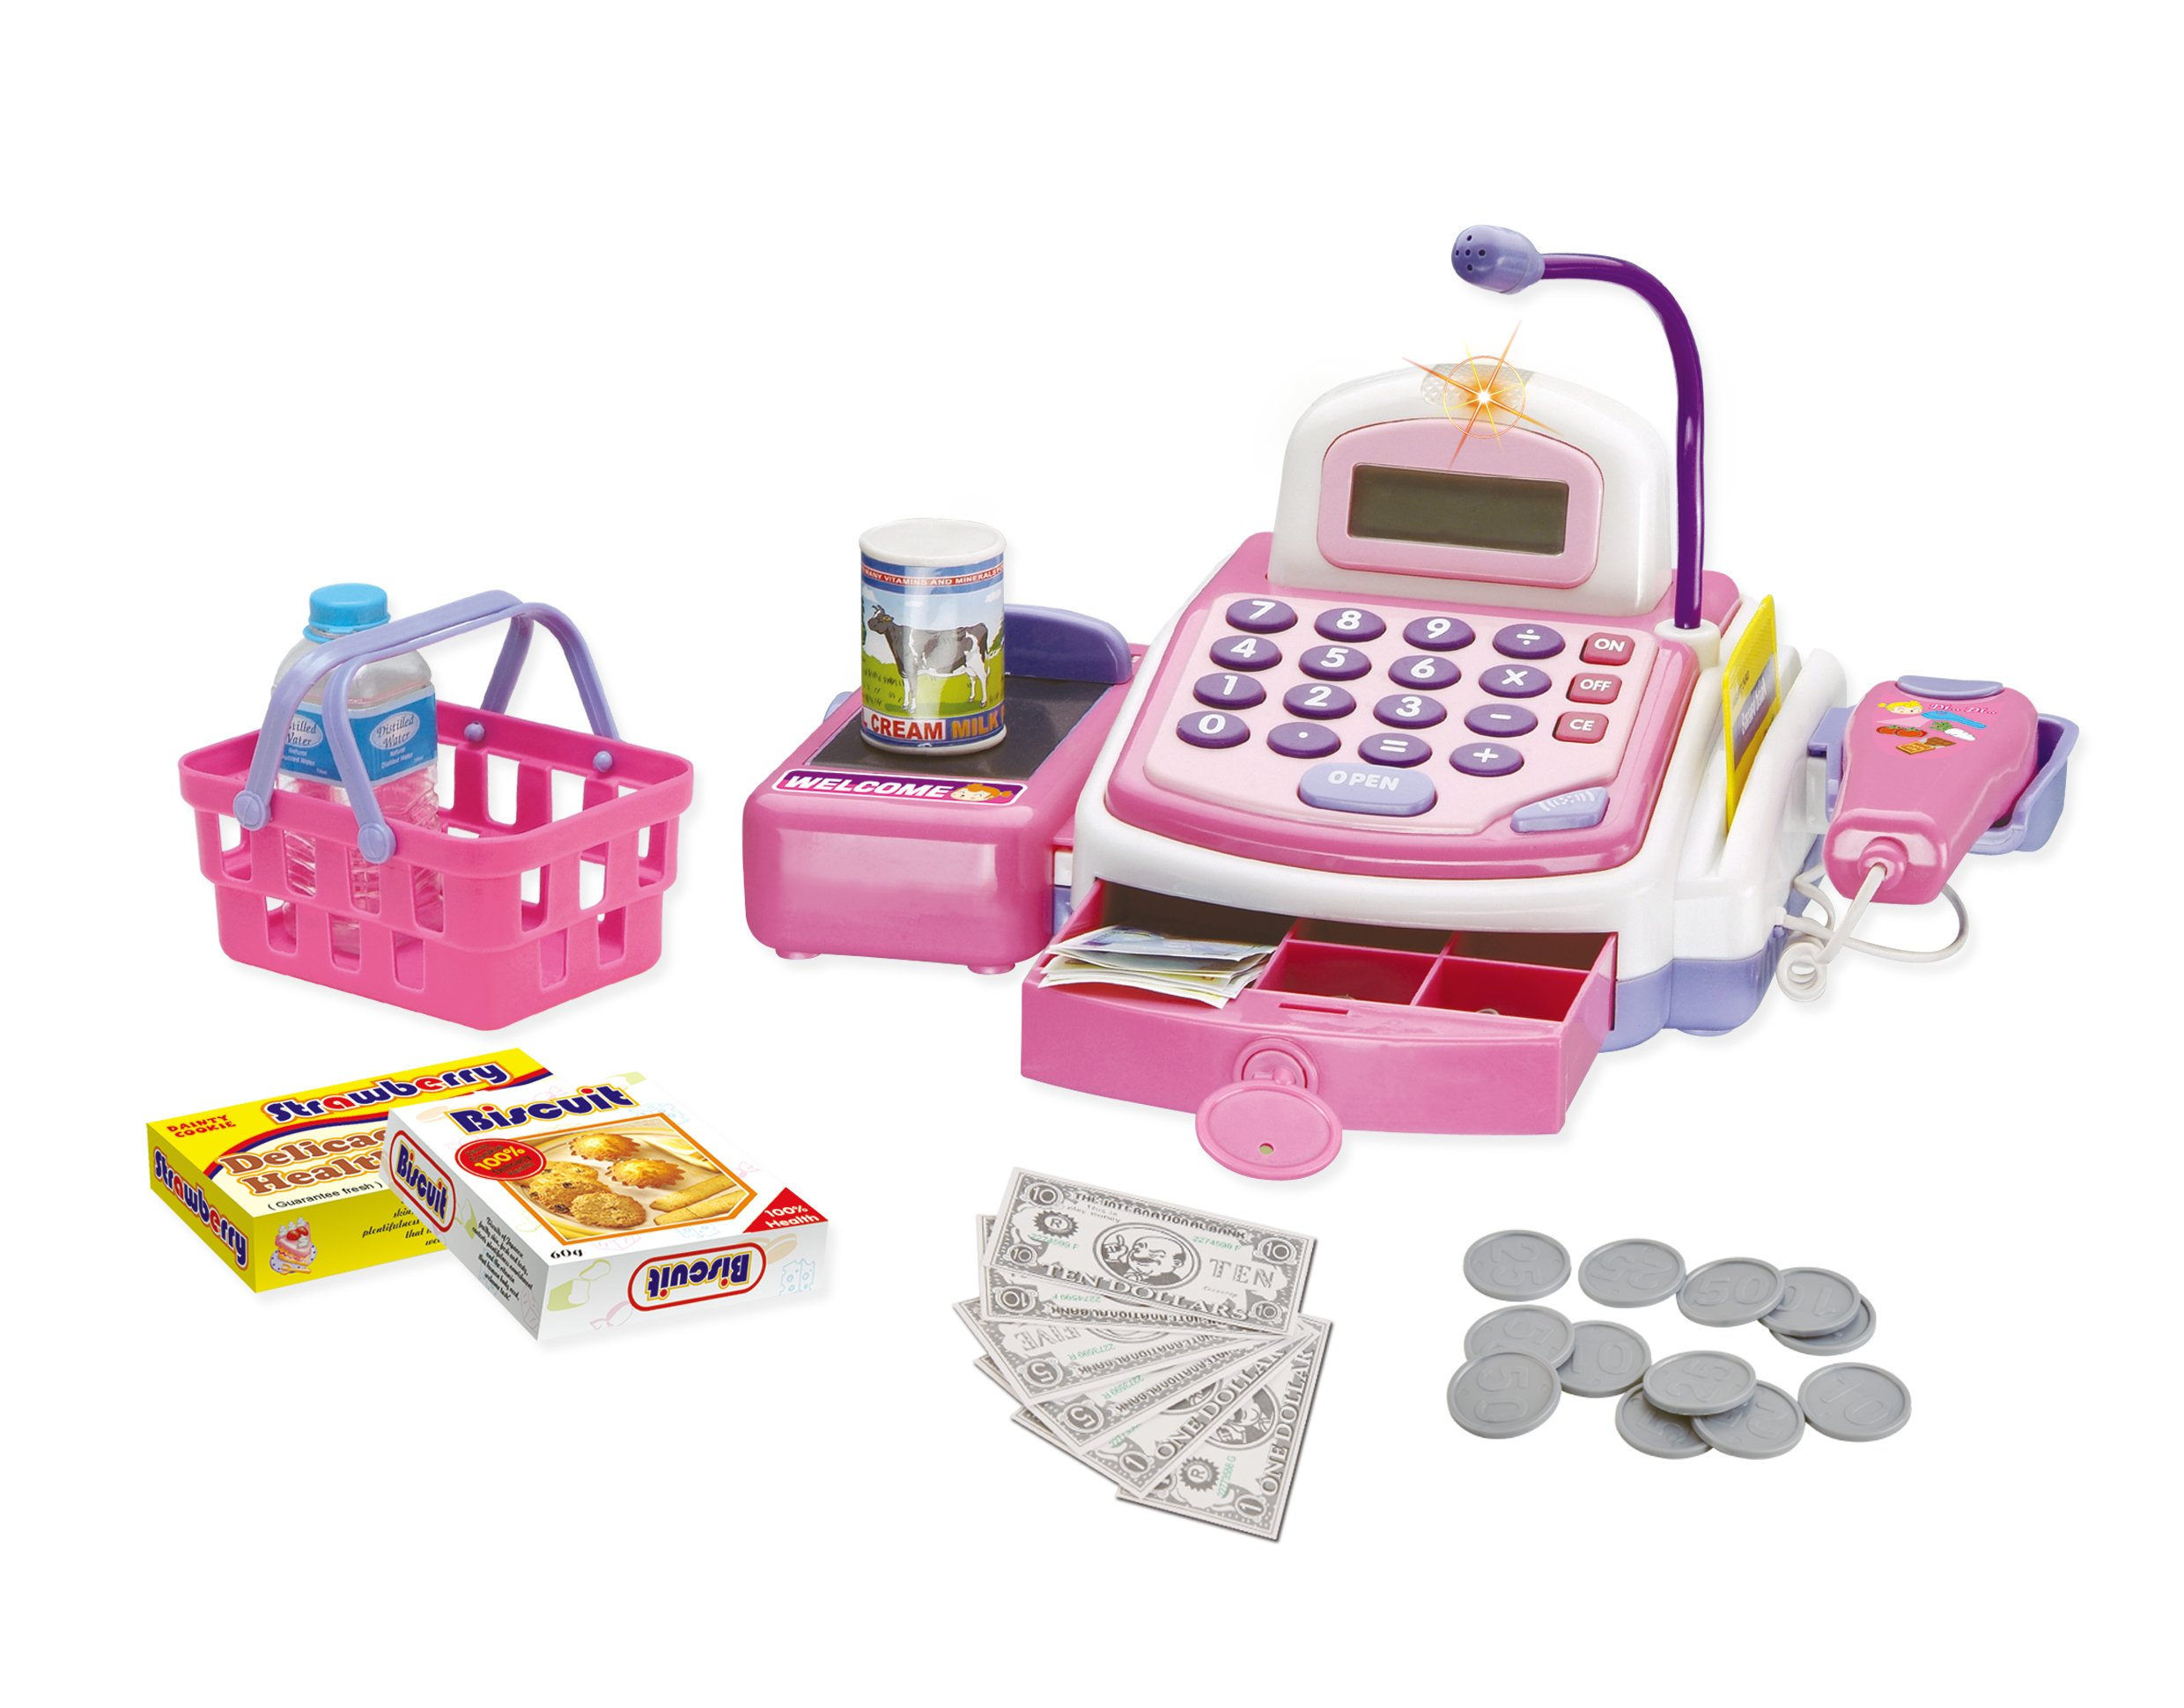 CifToys Cashier Toy Cash Register Playset | Pretend Play Set for Kids | Colorful Children's Supermarket Checkout Toy with Microphone & Sounds | Ideal Gift for Toddlers & Pre-Schoolers